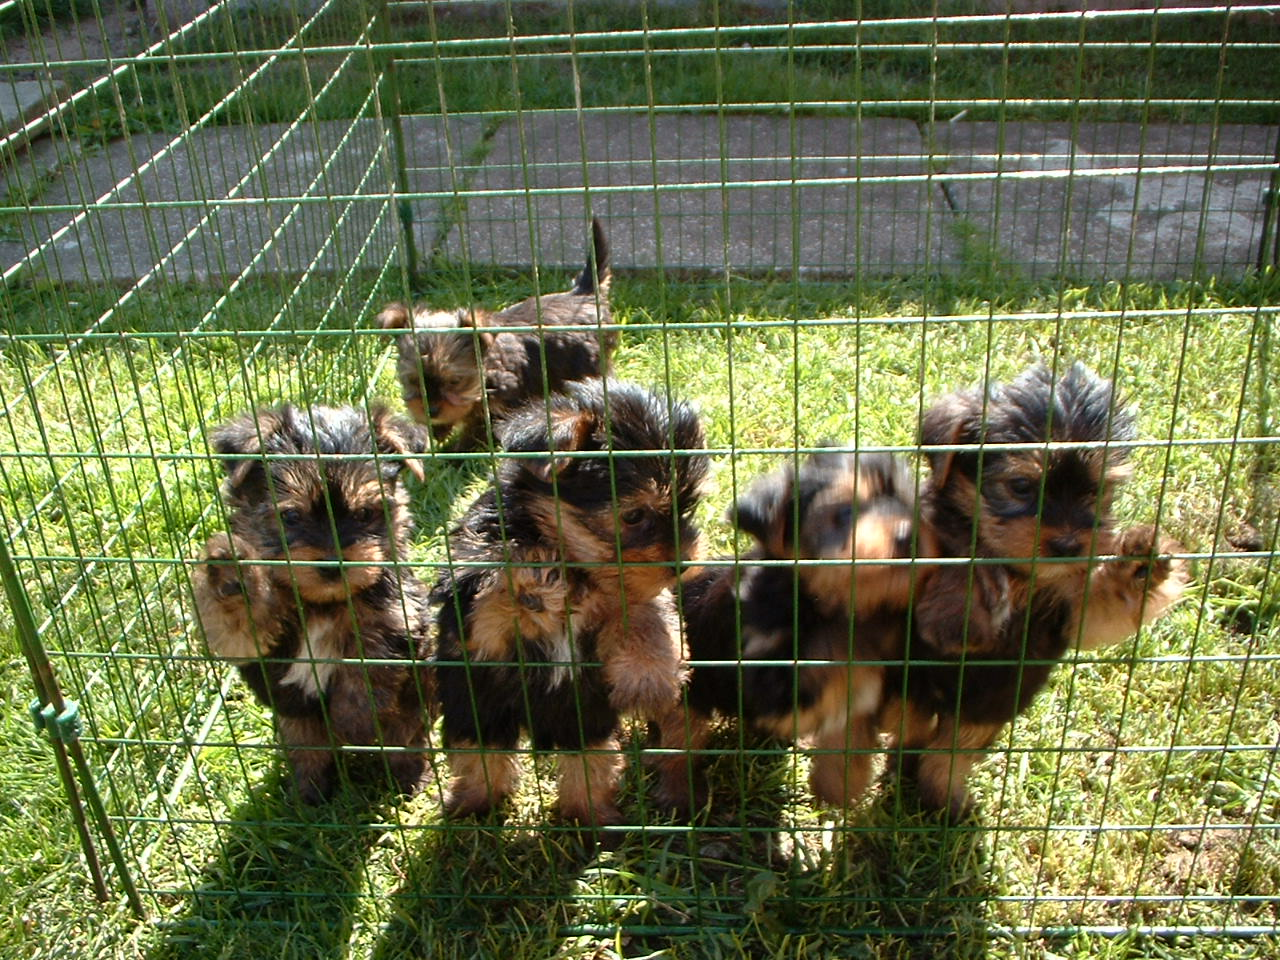 Several Yorkshire Terrier puppies playing together